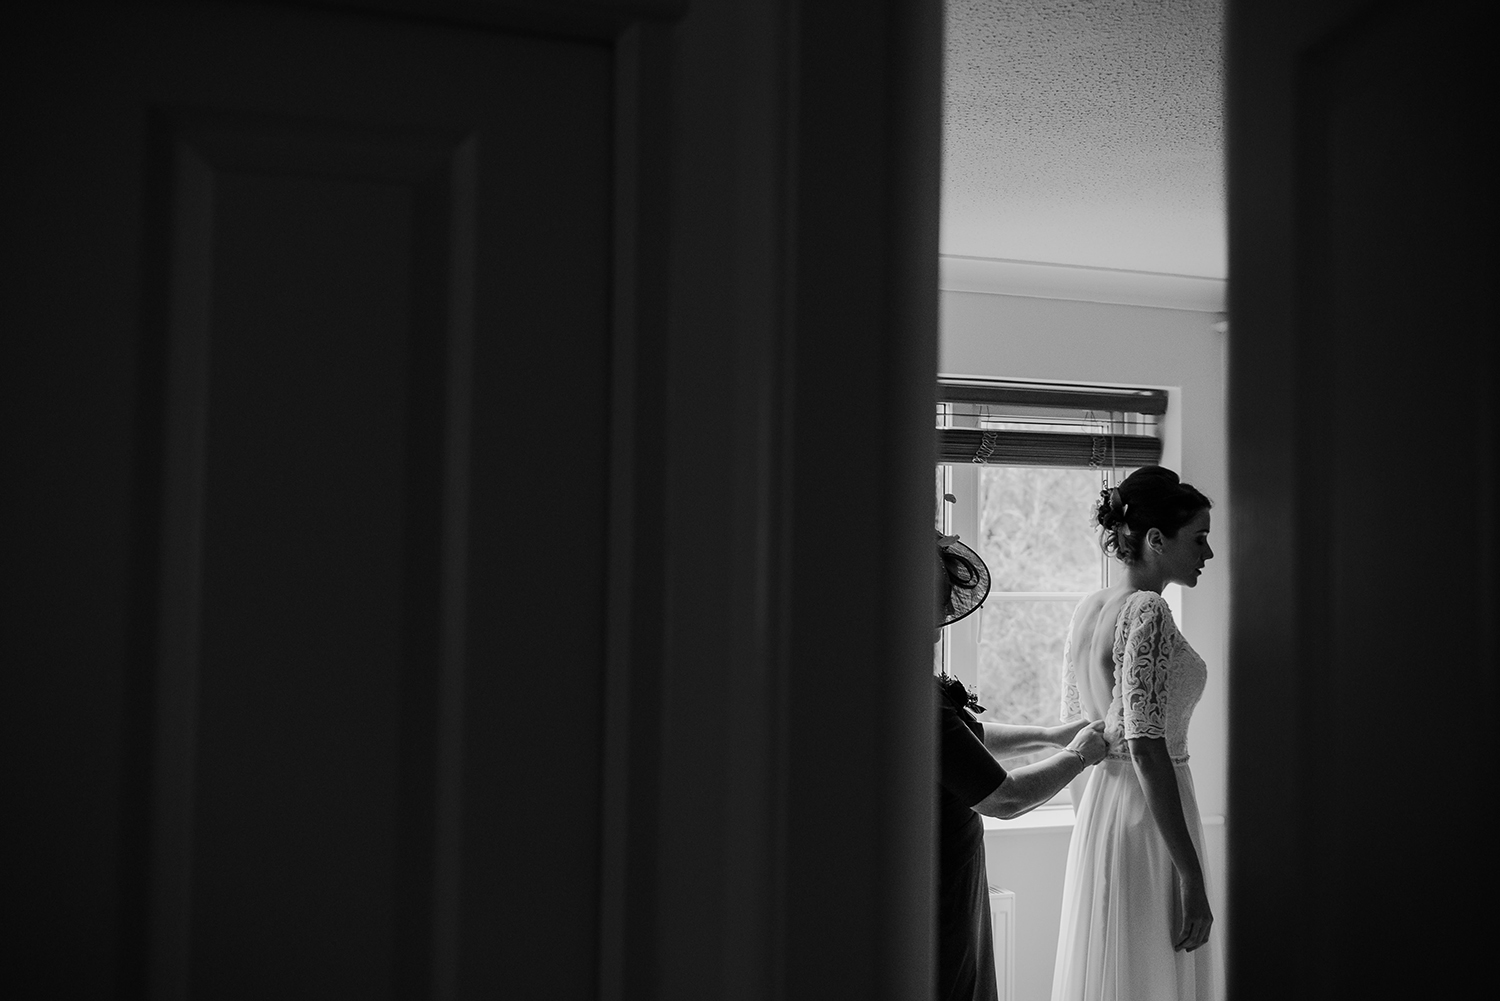 BW photo taken through a gap in the door of the brides mum doing up her dress